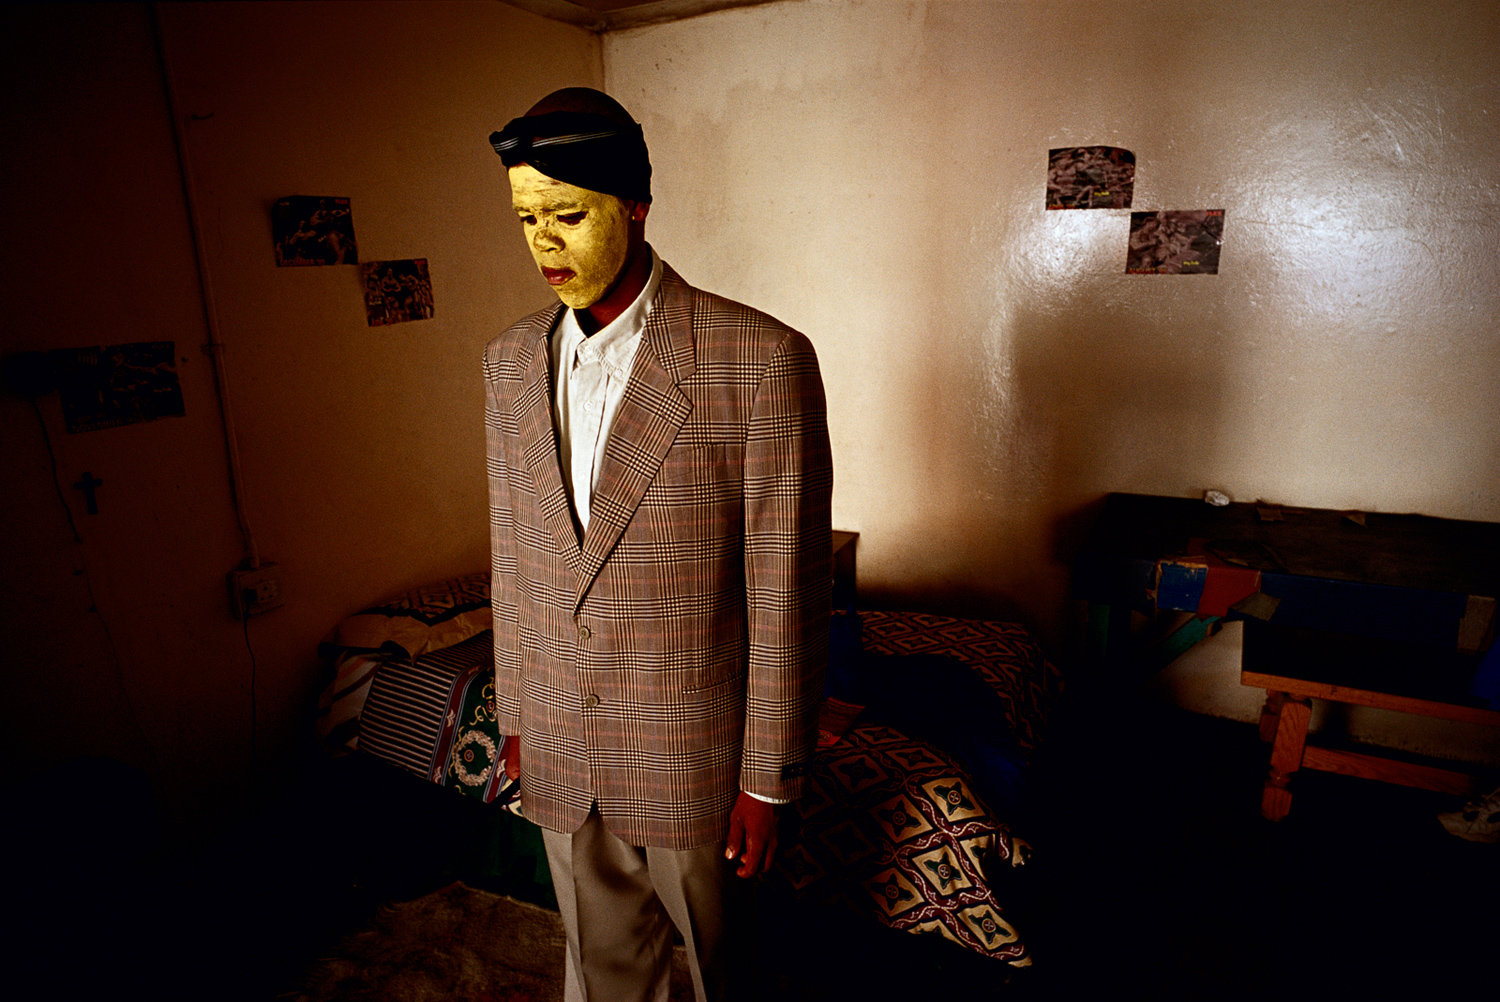 Luxolo Mkwelo, age 19, stands in his room after coming home from a traditional manhood ceremony in Tshatshu, South Africa, August 2000. He spent six weeks in the bush learning to be a man. He was circumcised and elders guided him during the ceremony, which is to prepare them for adulthood. Former South African president Nelson Mandela went trough the ceremony when he was young.